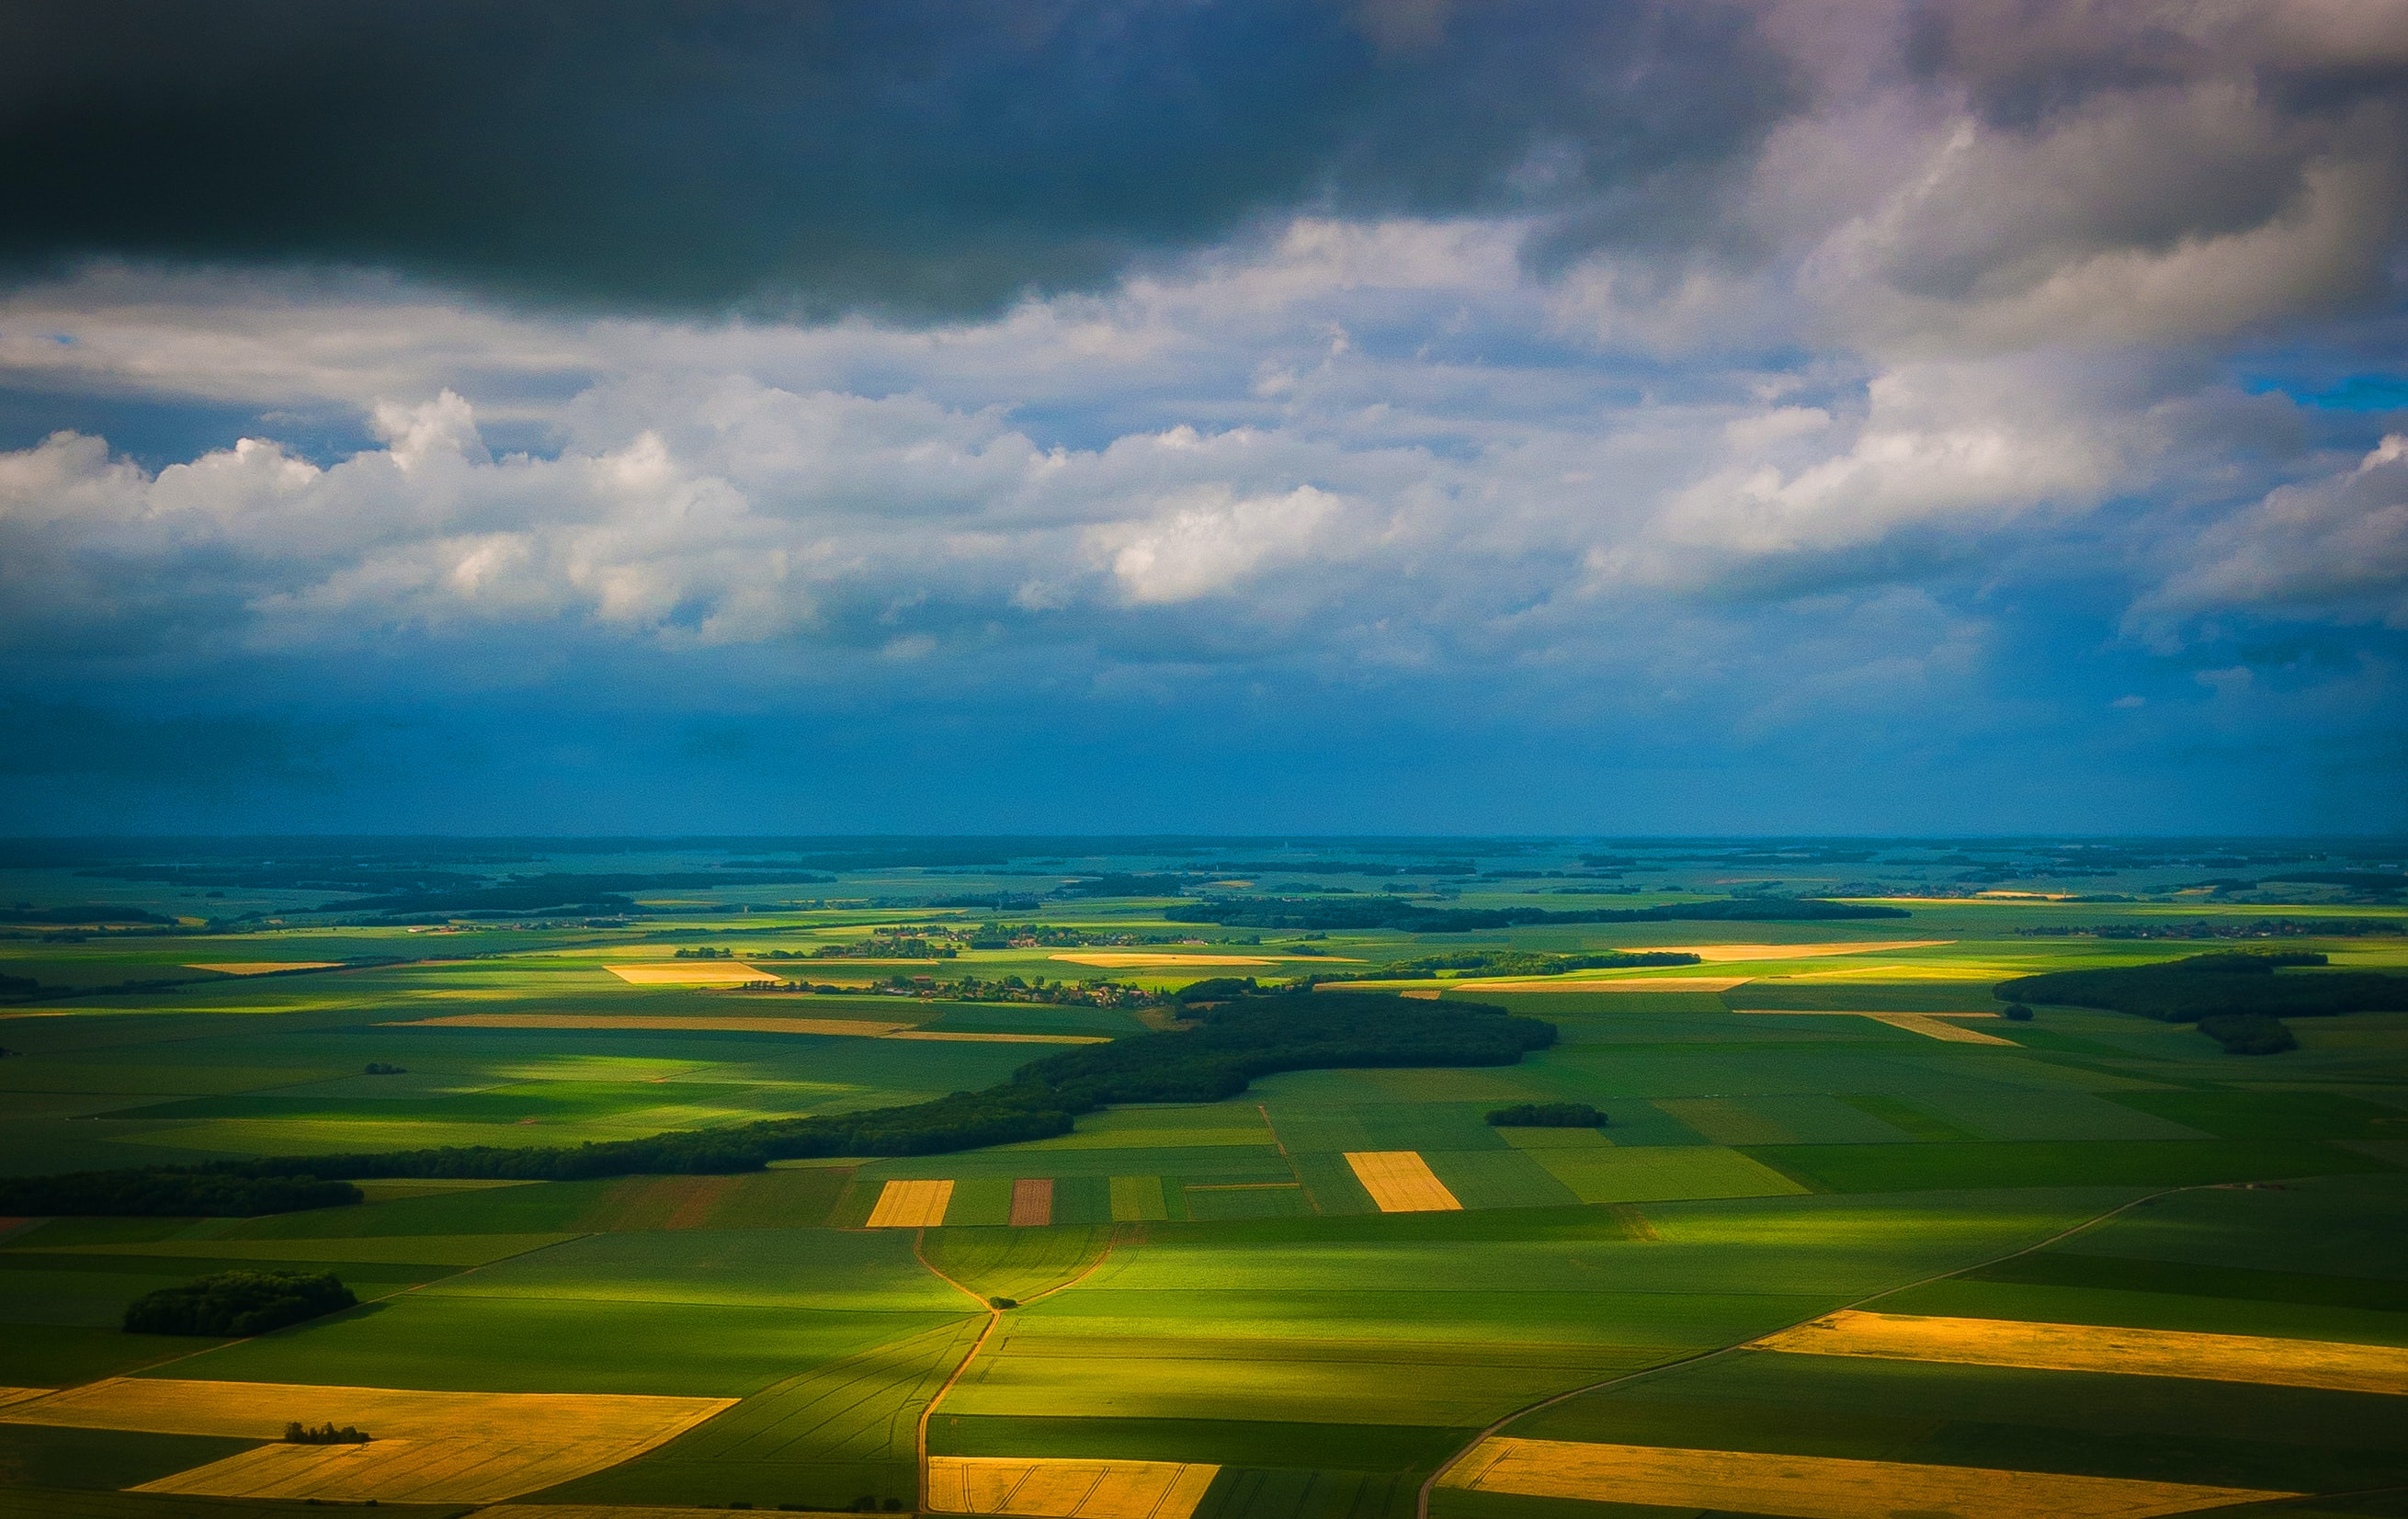 Wide shot of green and yellow agricultural fields with clouds overhead